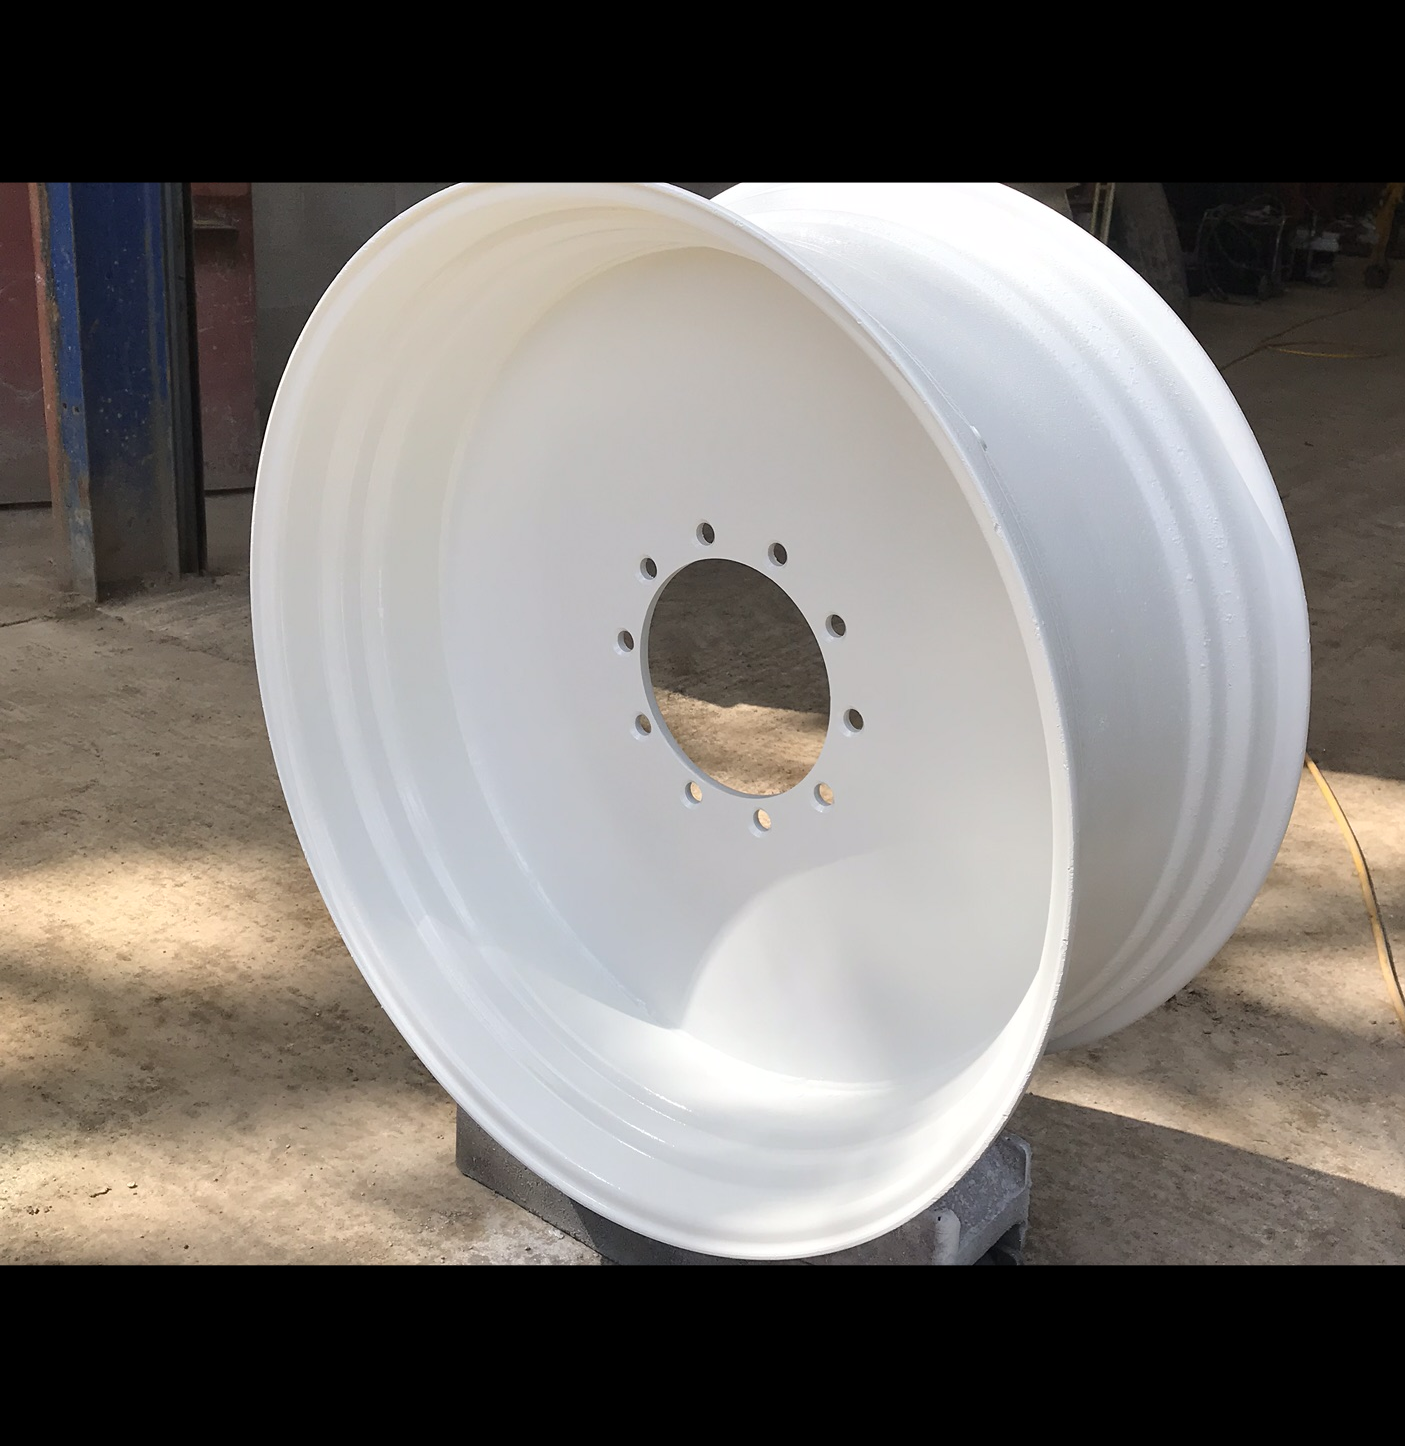 Wheel off frastrac refurbed